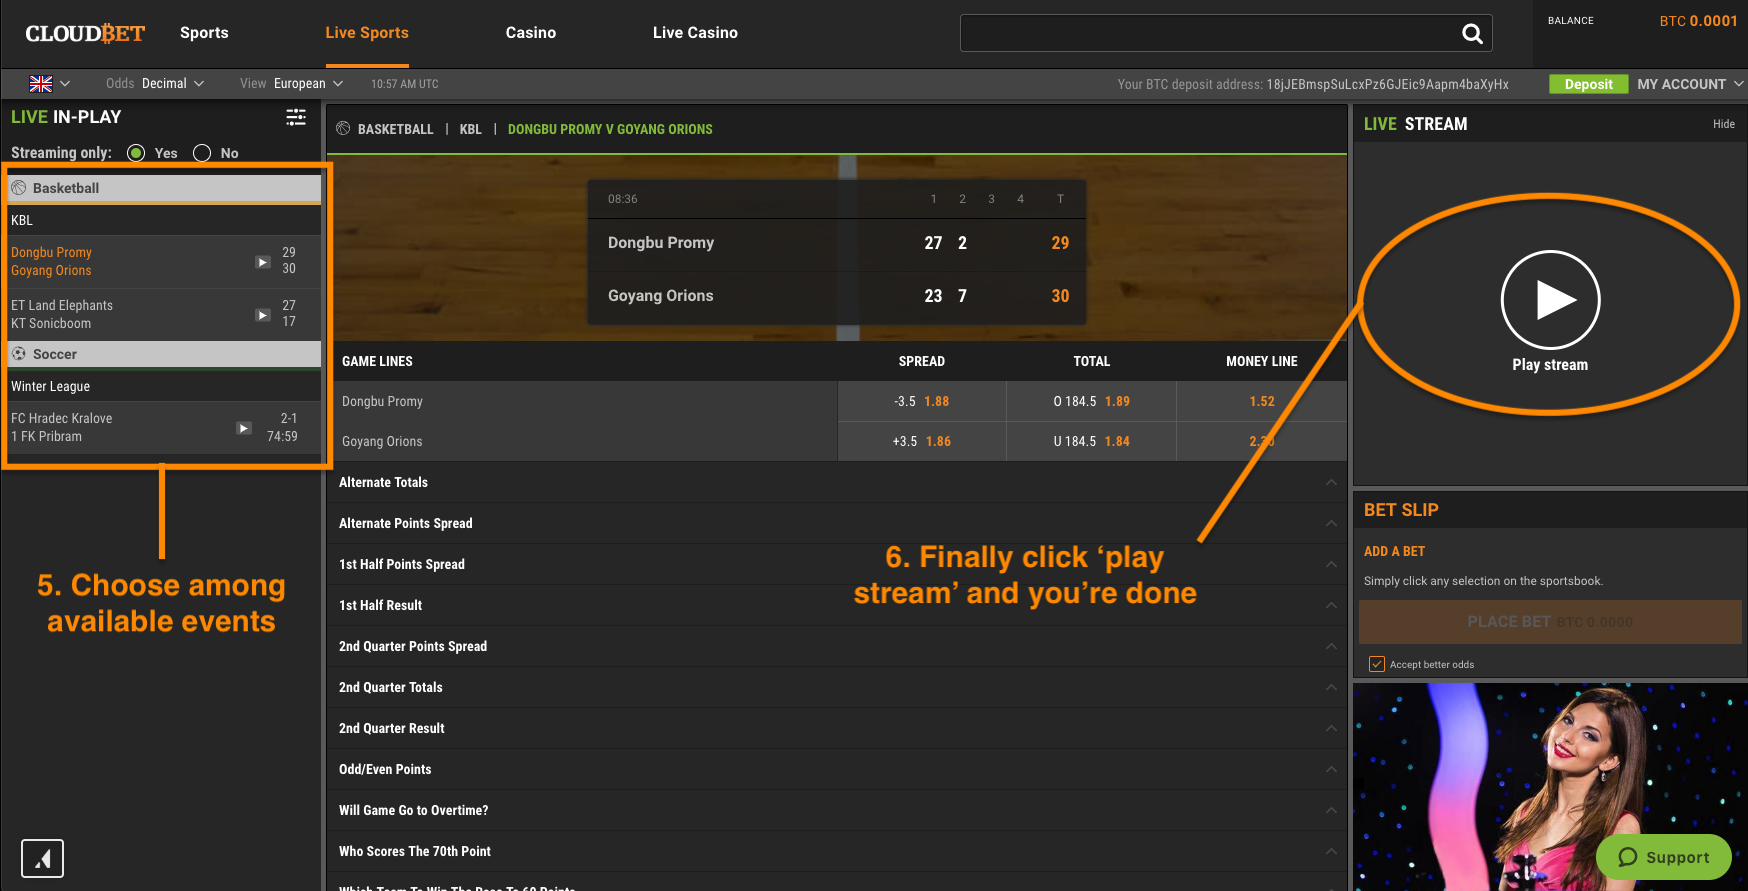 Step 3: Choose an event and click Play Stream